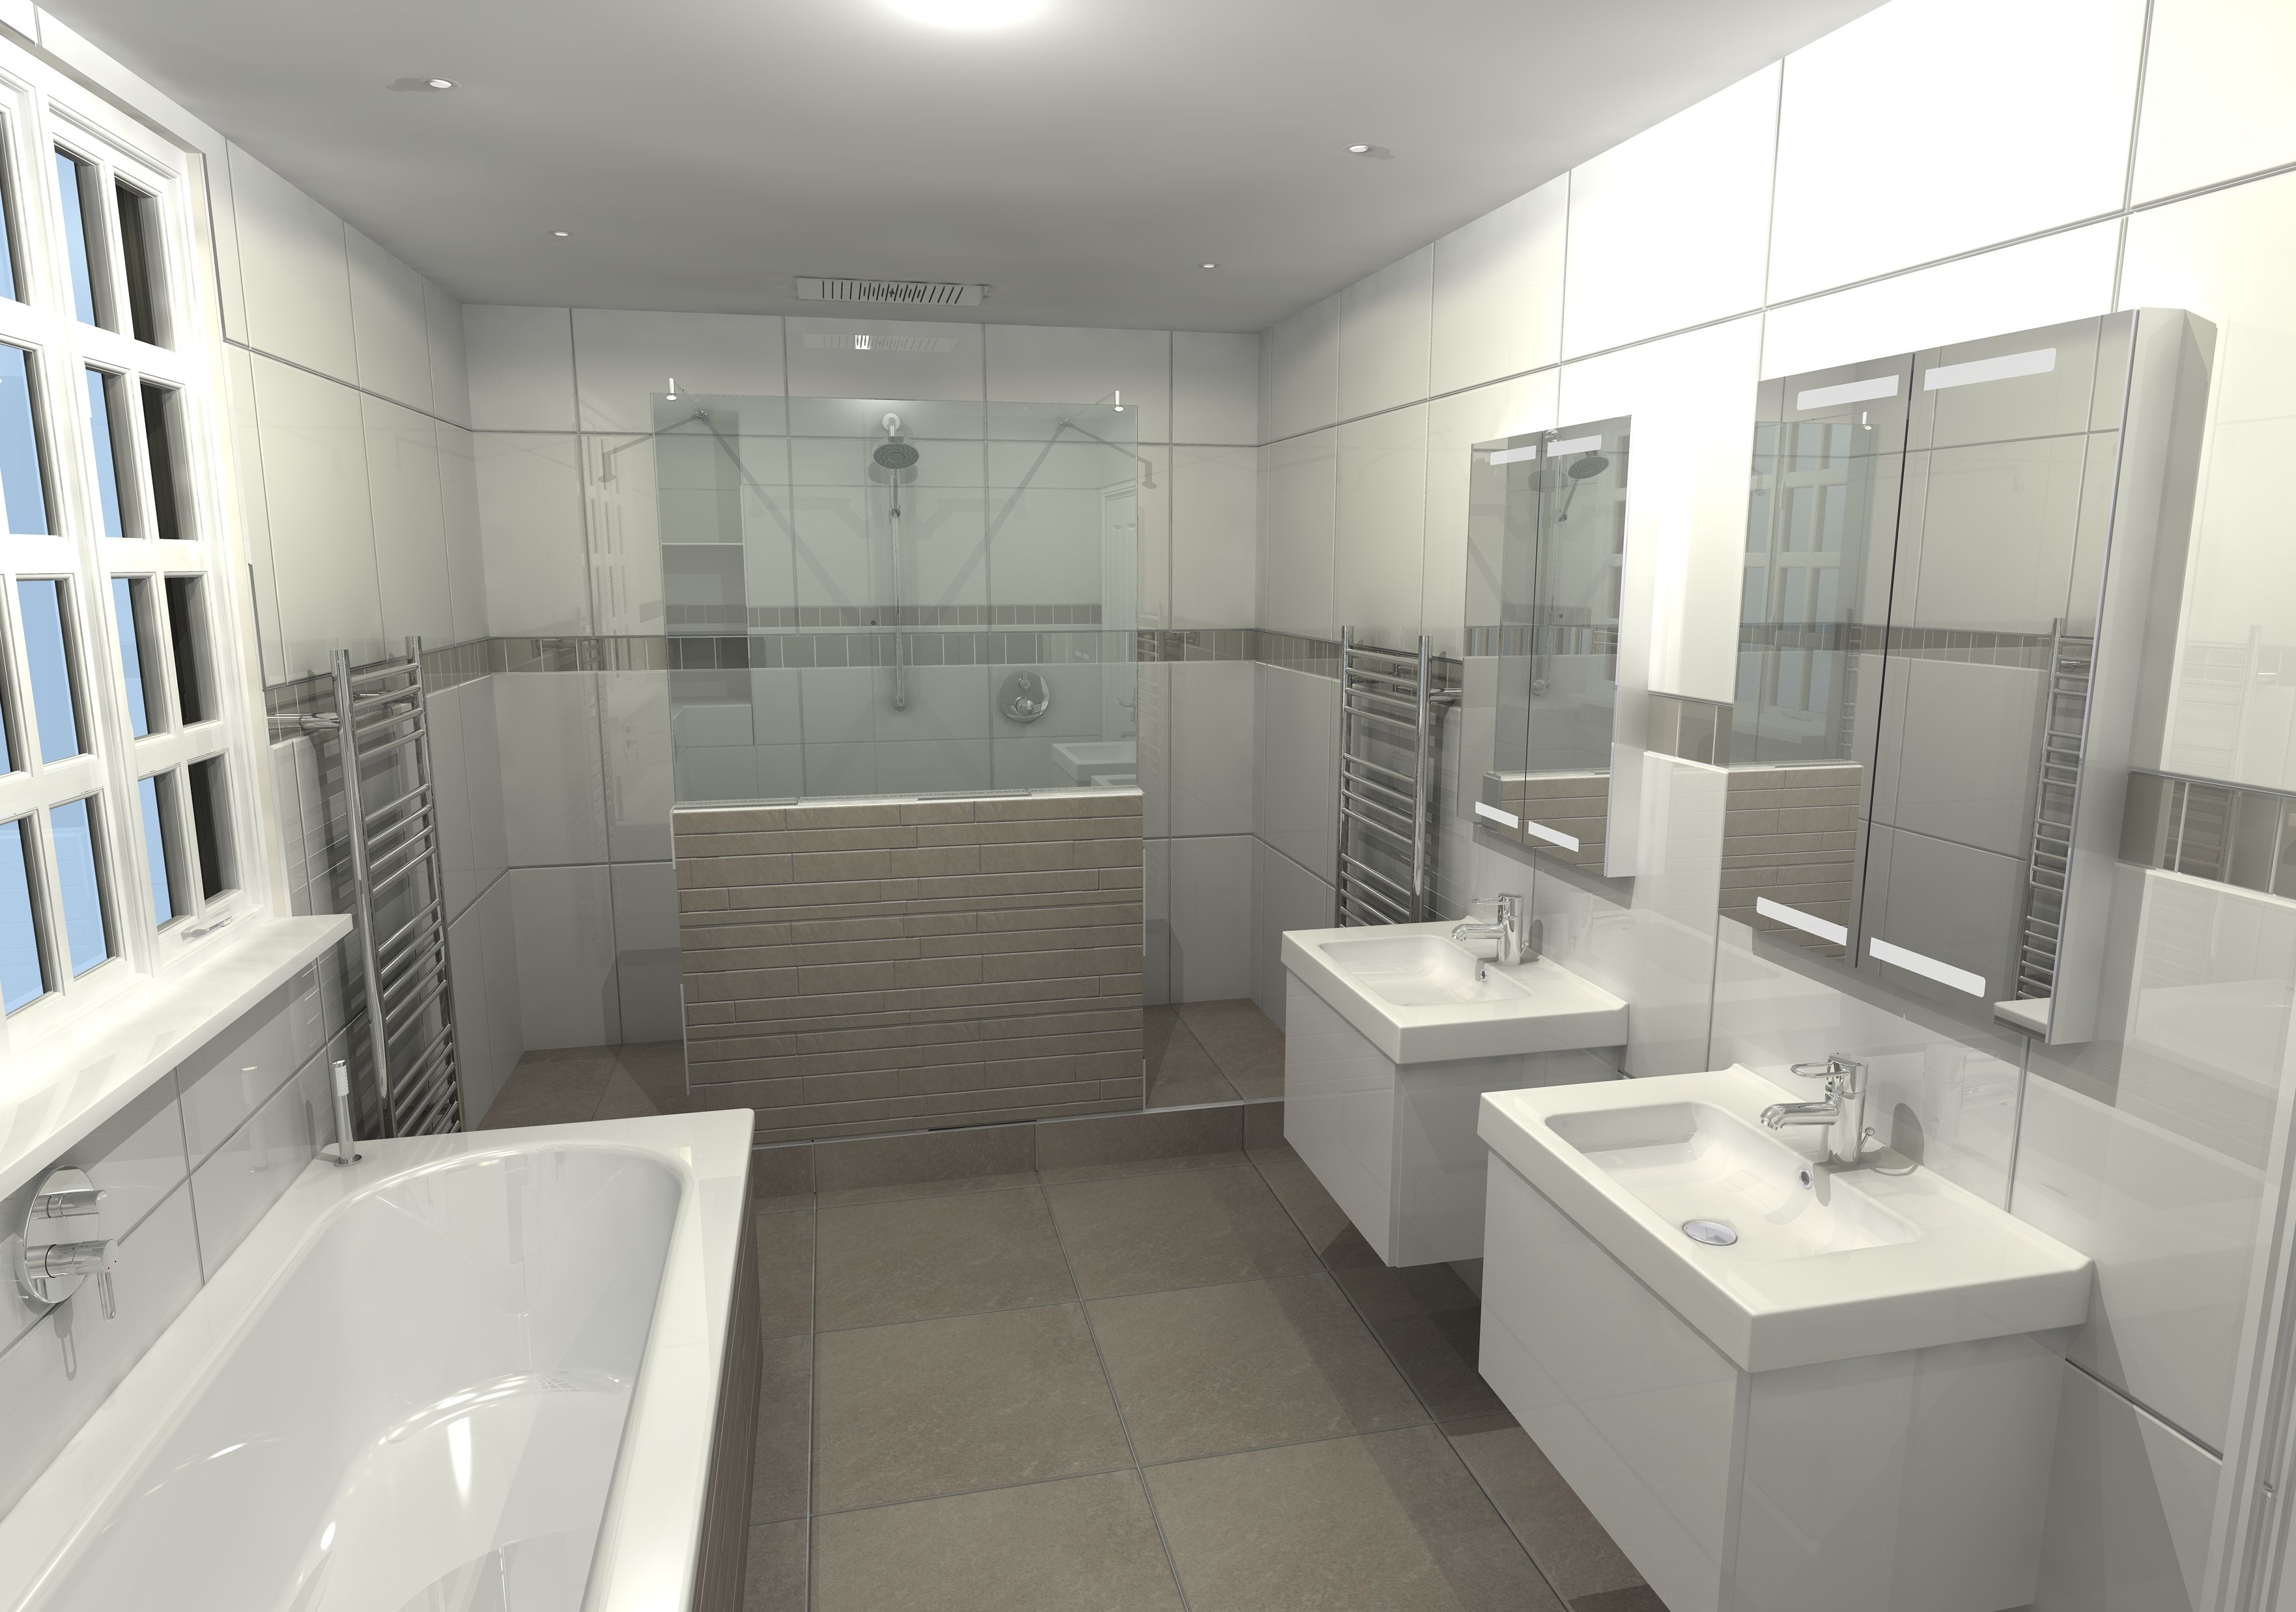 This Large Ensuite Design Shows A Large Double Entry Shower With Modesty Wall The Rear Of Which Boasts Stora Ensuite Design New Bathroom Ideas Mirror Cabinets